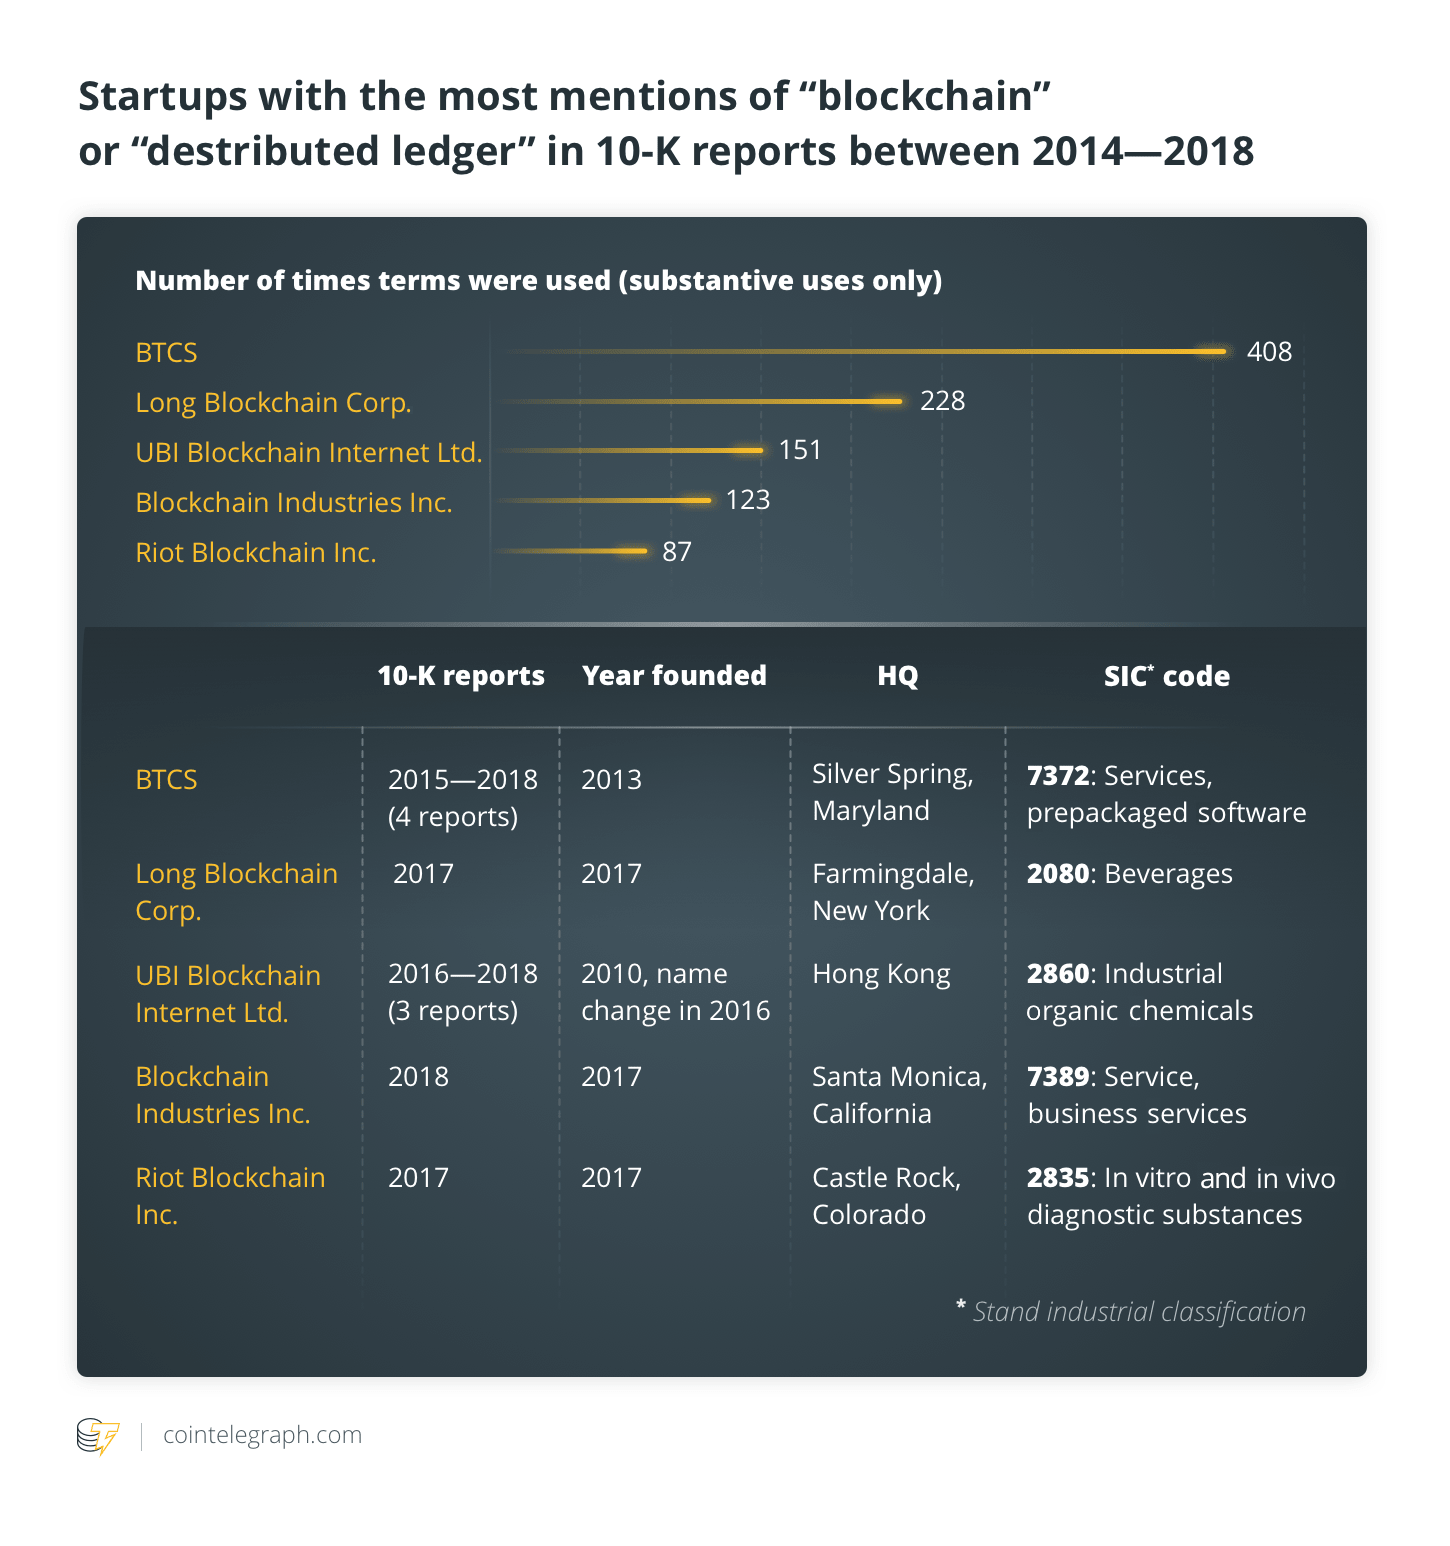 Startups with the most mentions of